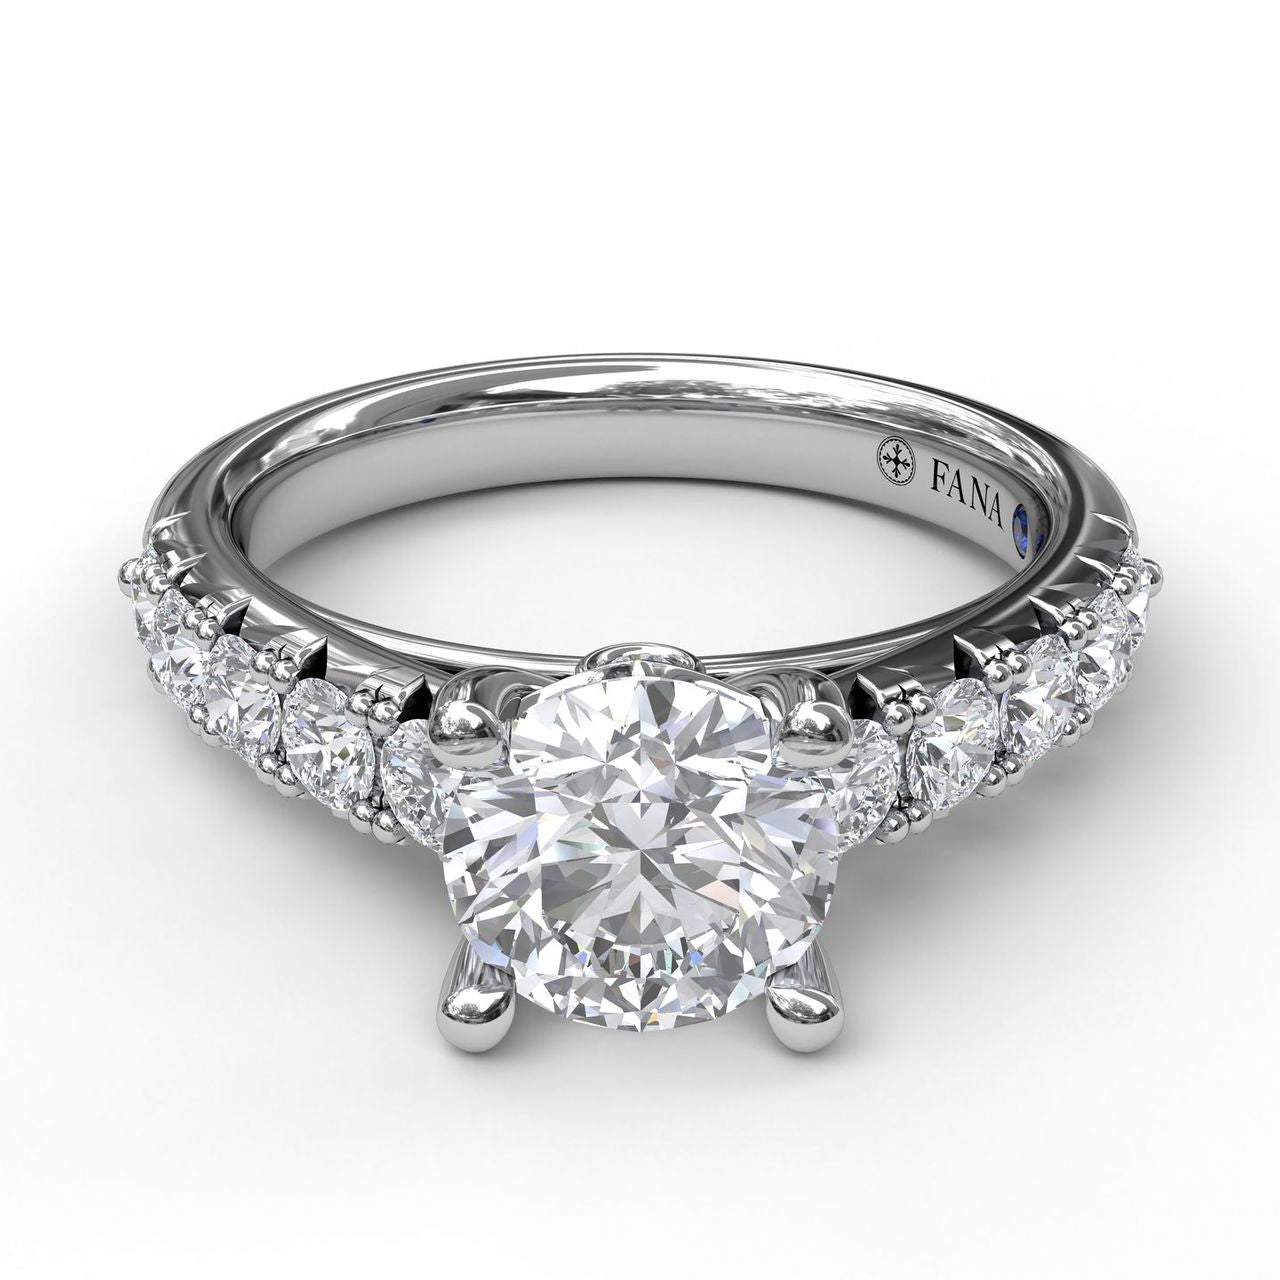 FANA 14k White Gold Engagement Ring with .58ctw Diamonds